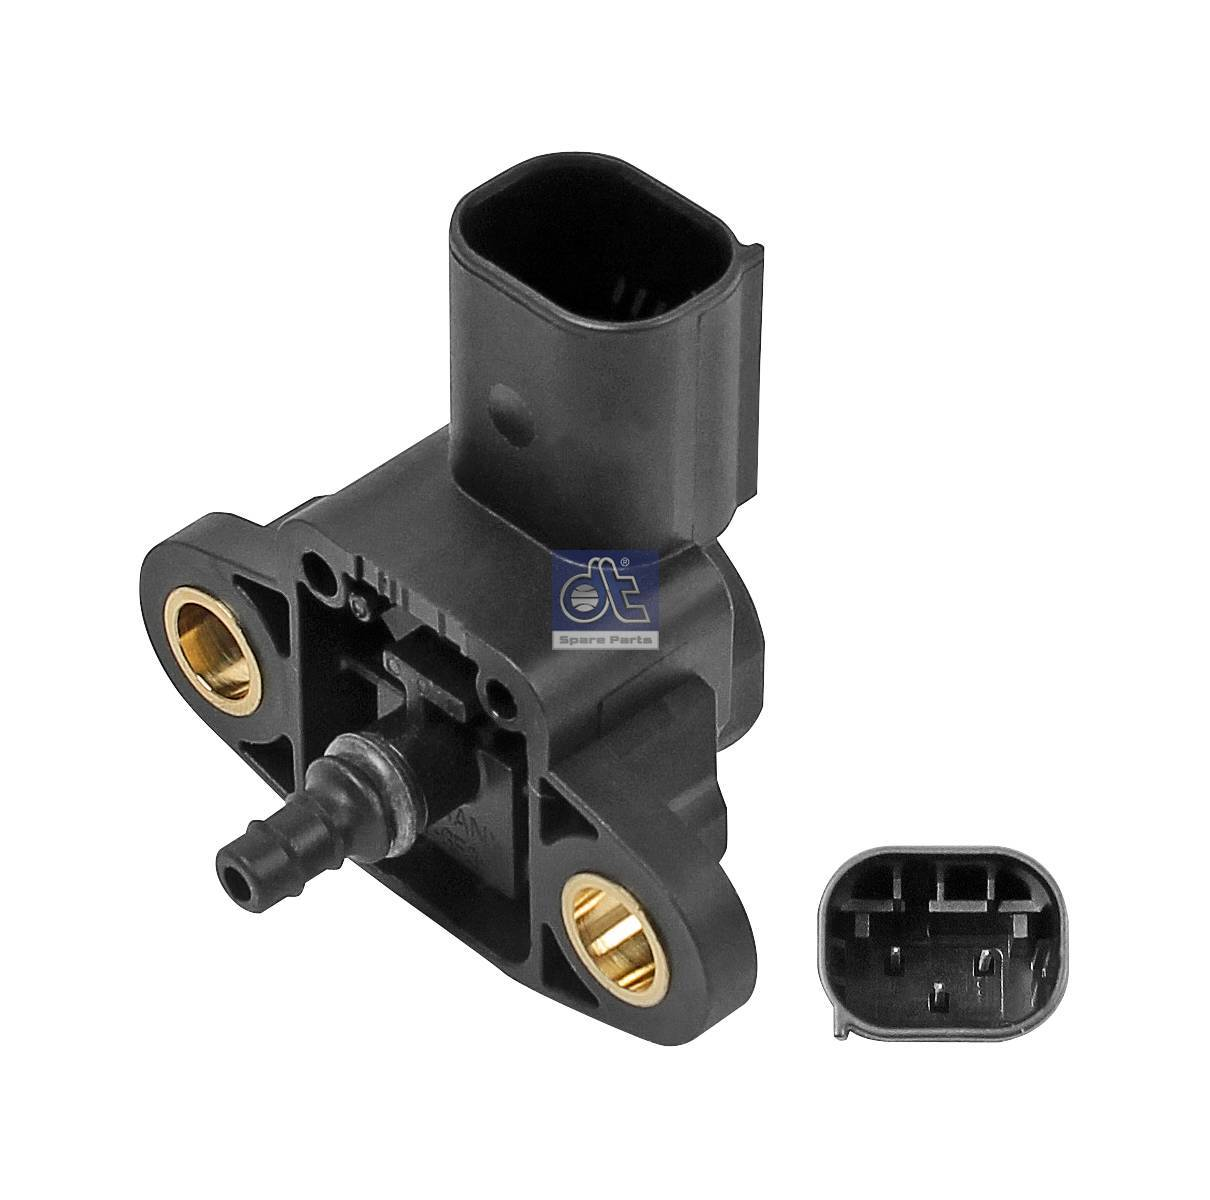 DT 4 68272 Charge pressure sensor 0061539828 suitable for